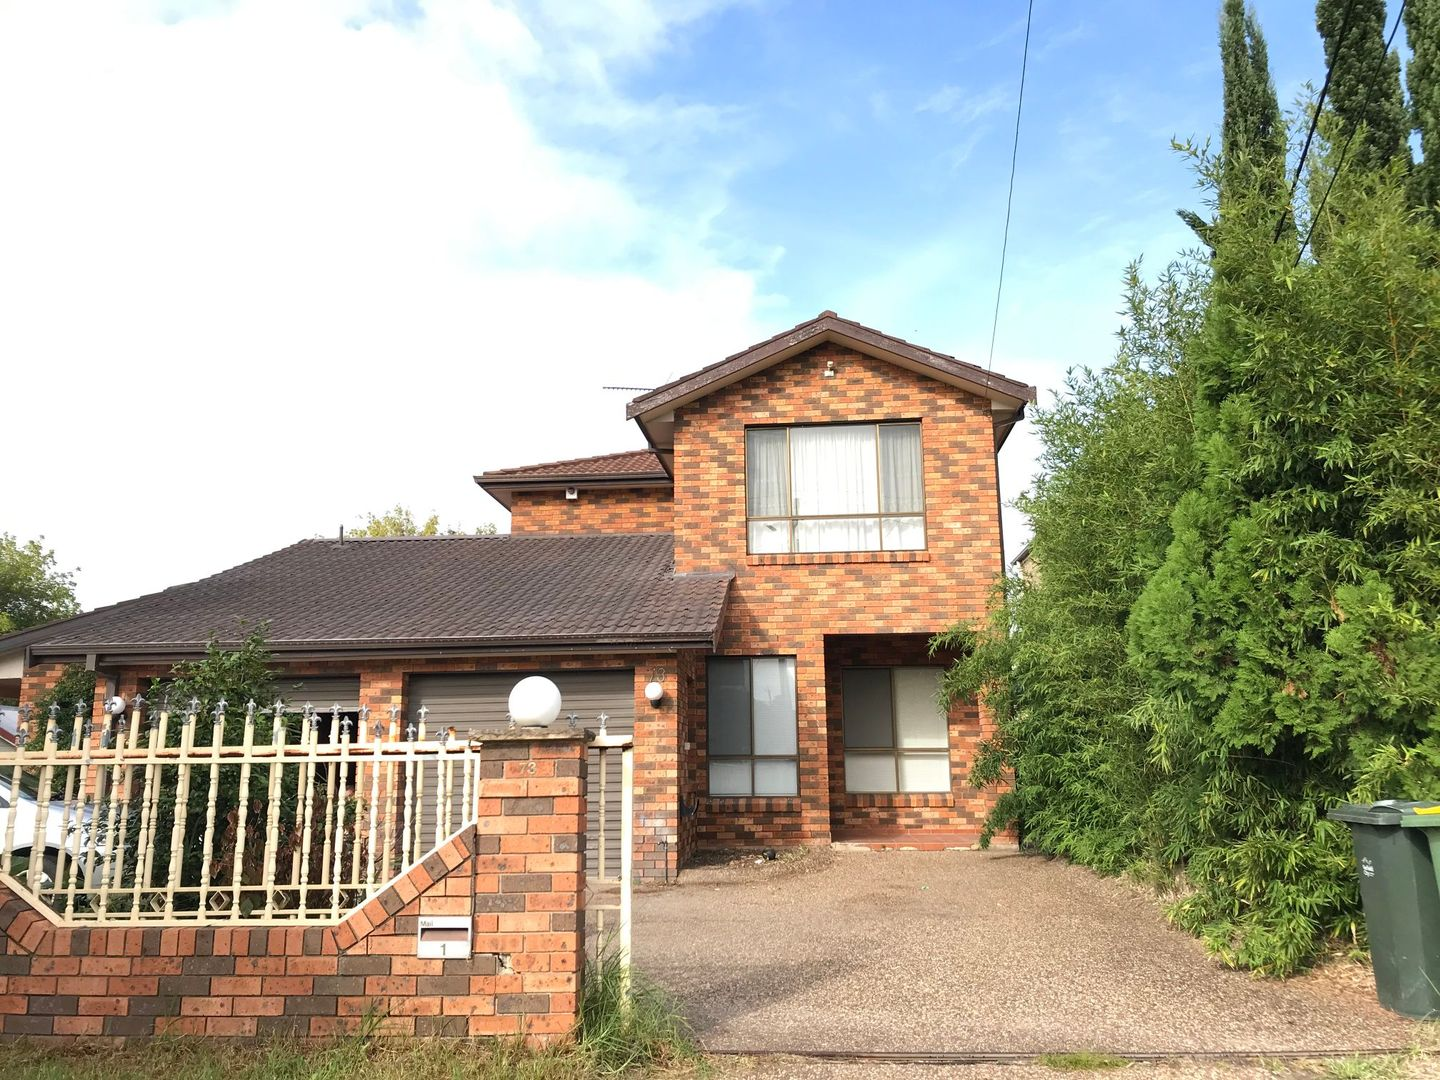 1/73 The Avenue, Canley Vale NSW 2166, Image 0